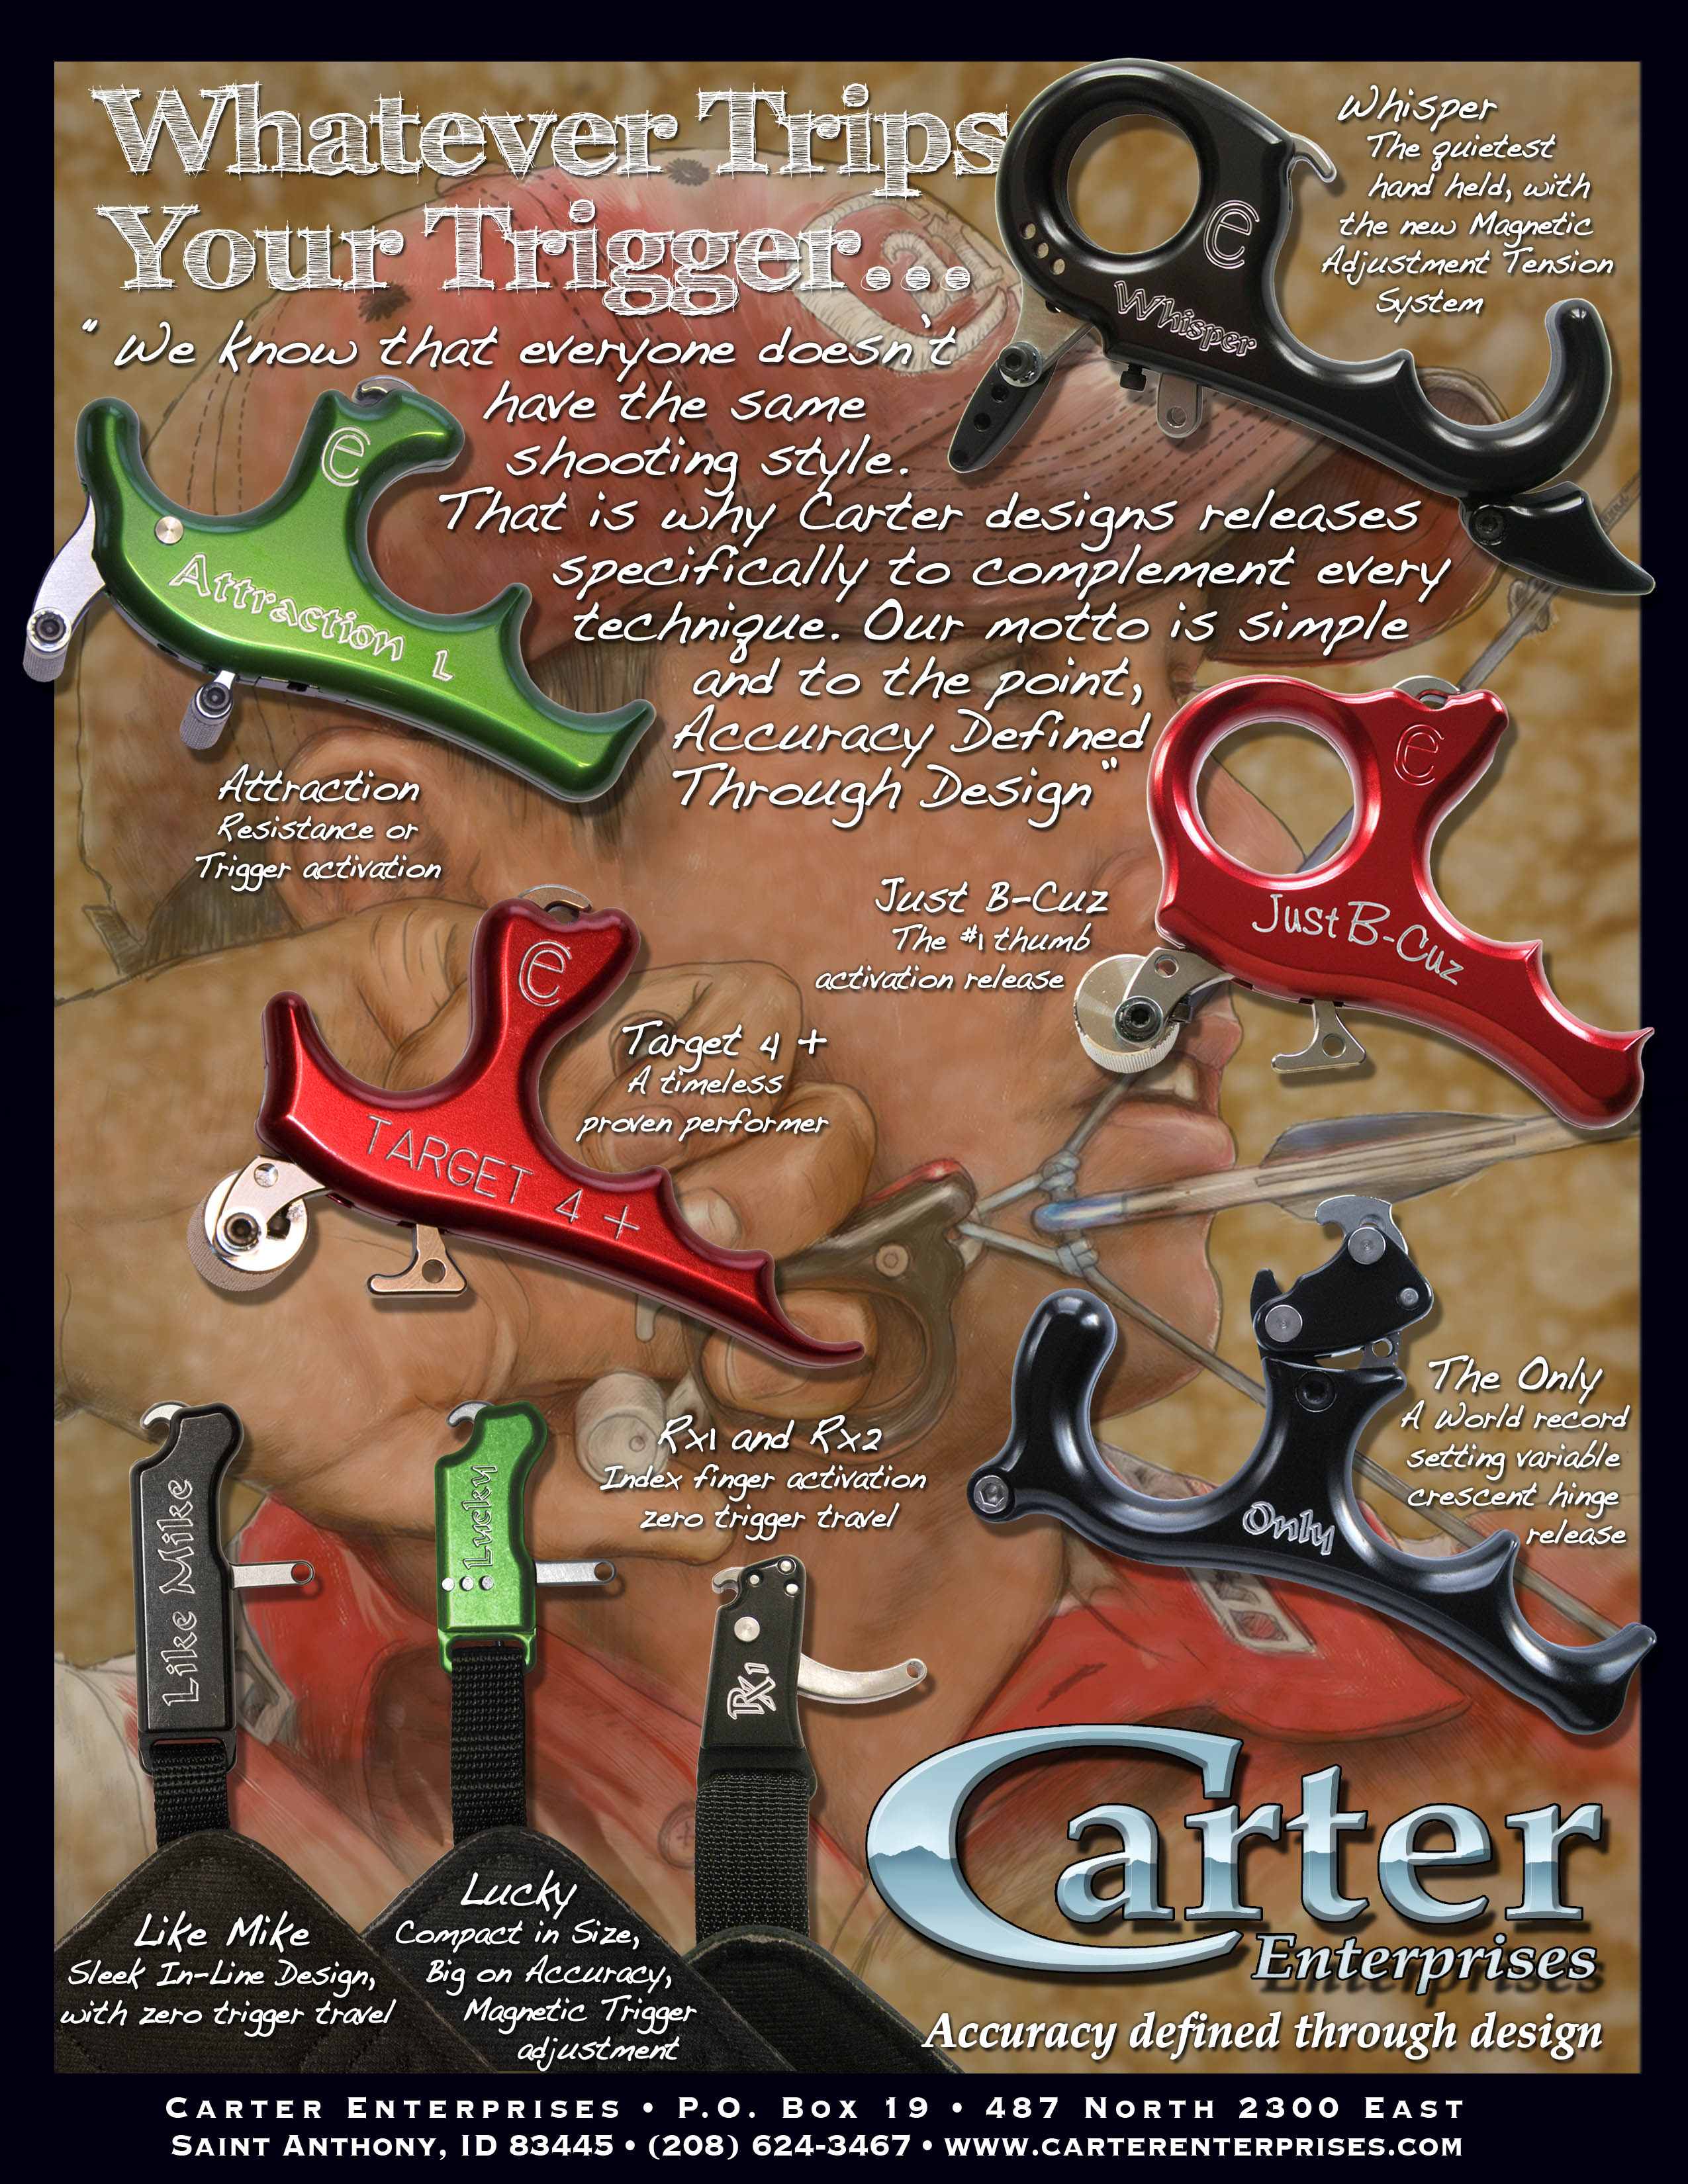 2010 Carter Full Page